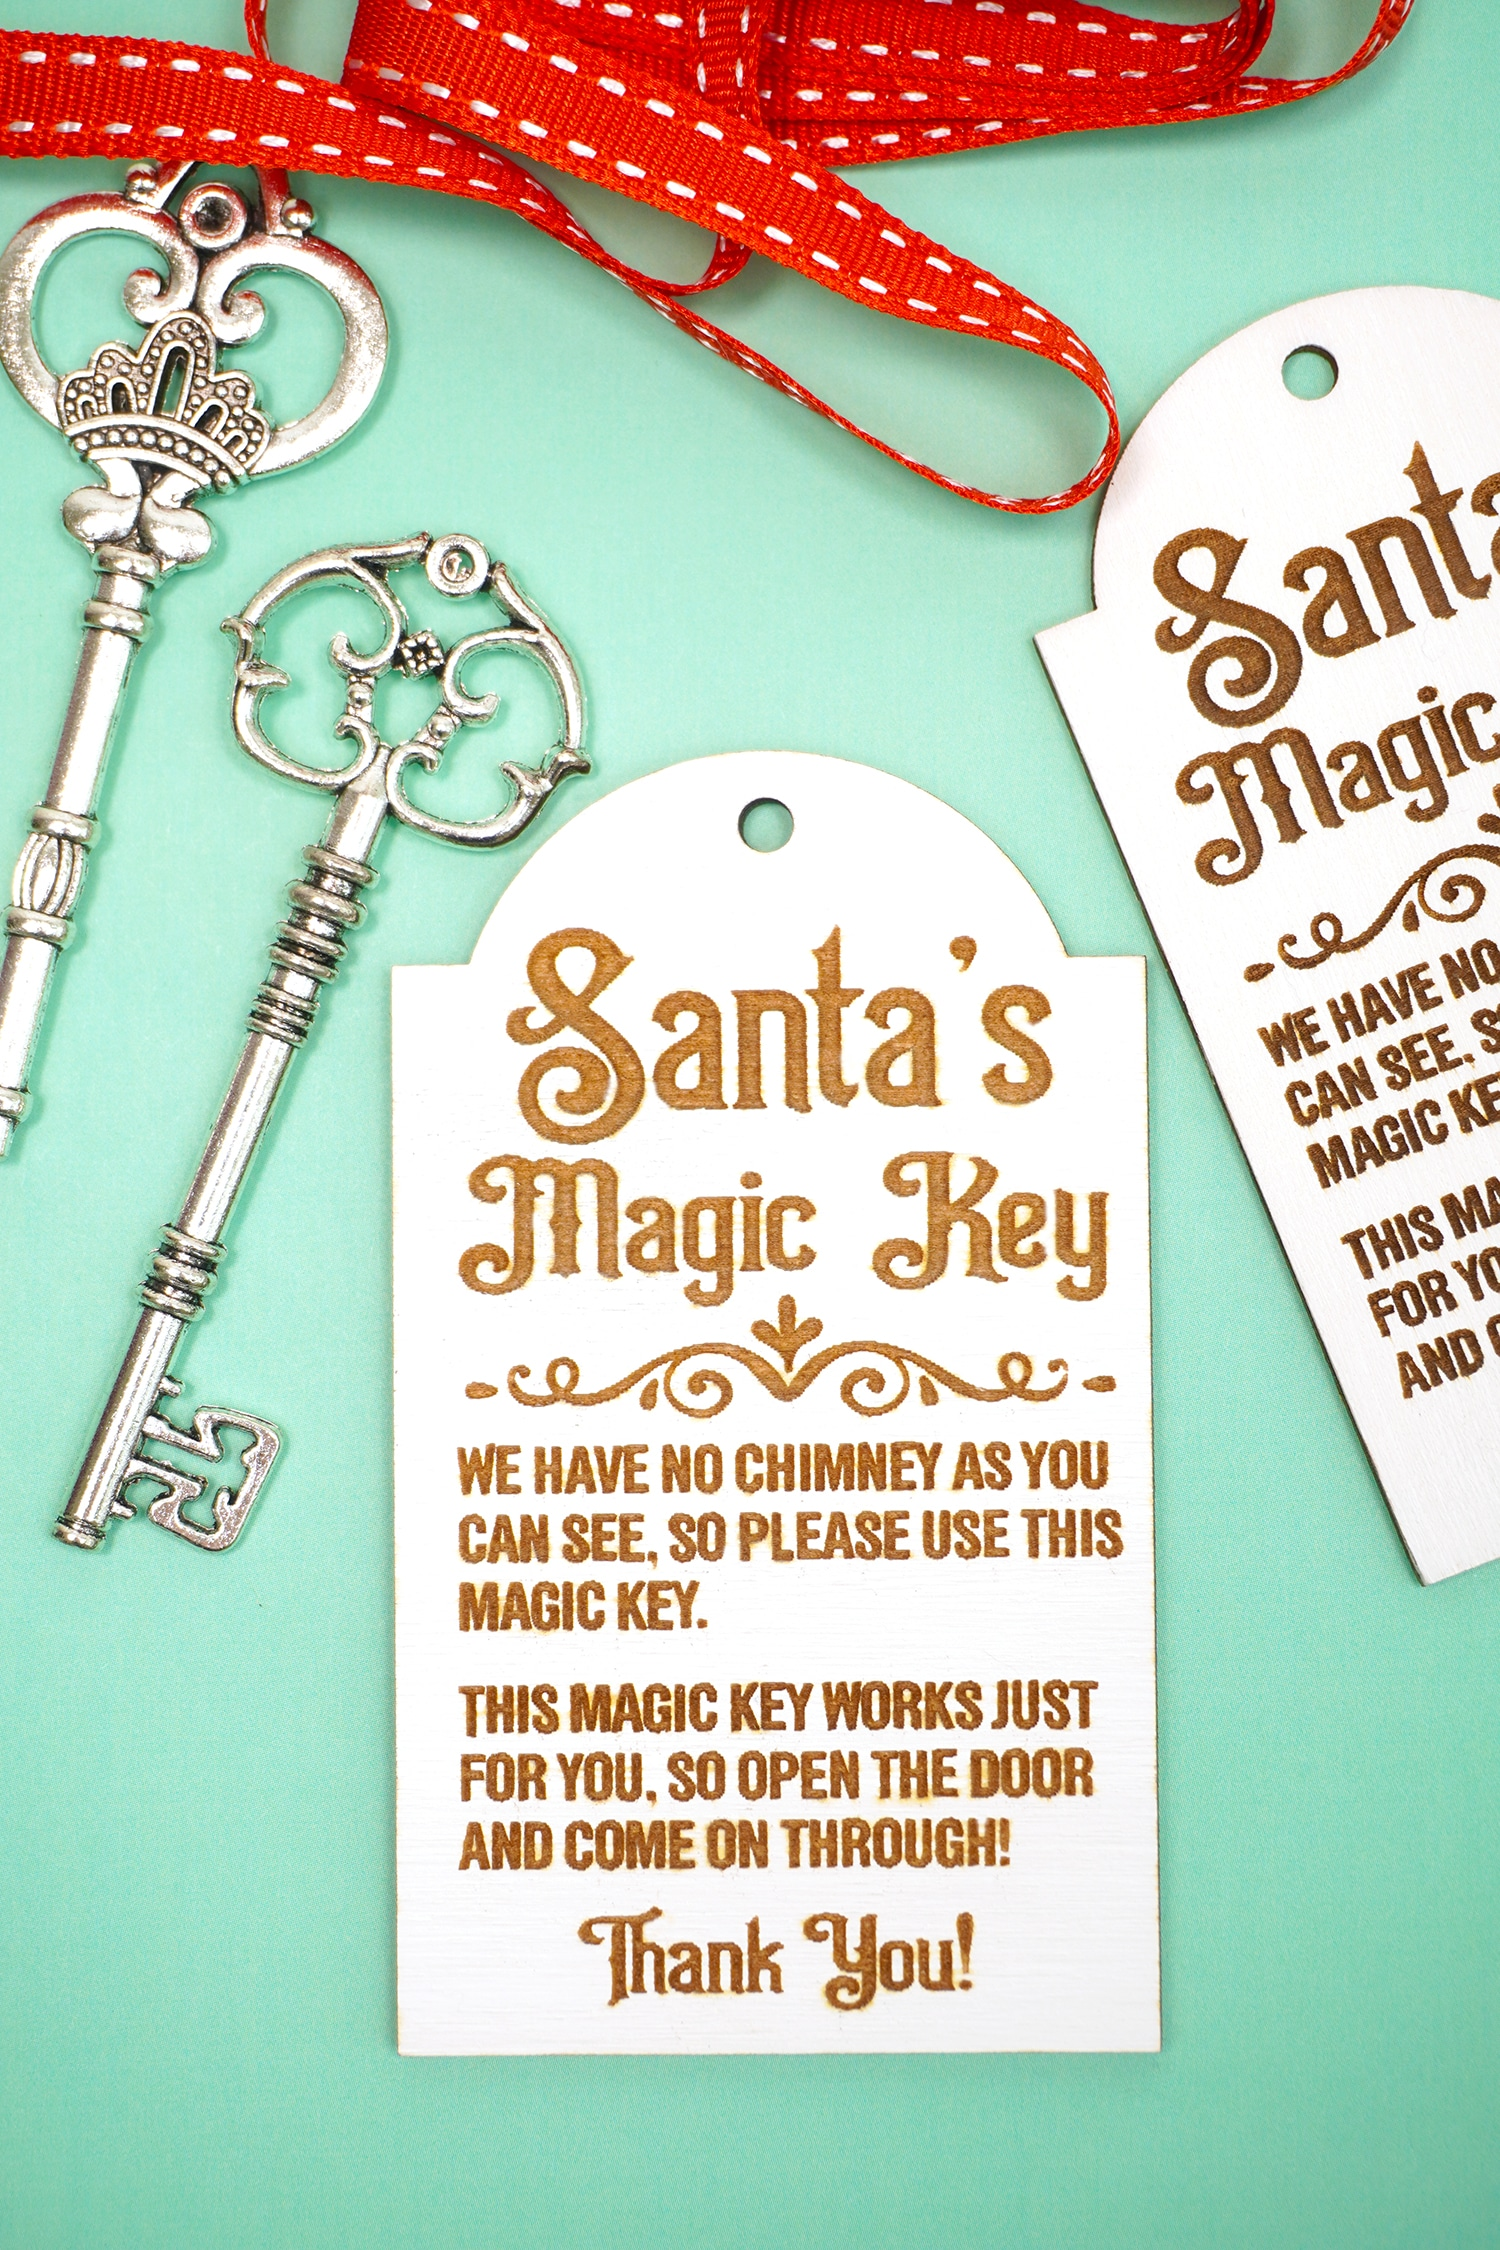 Laser engraved Santa's Magic Key wood tags with red ribbon and silver keys on a mint green background